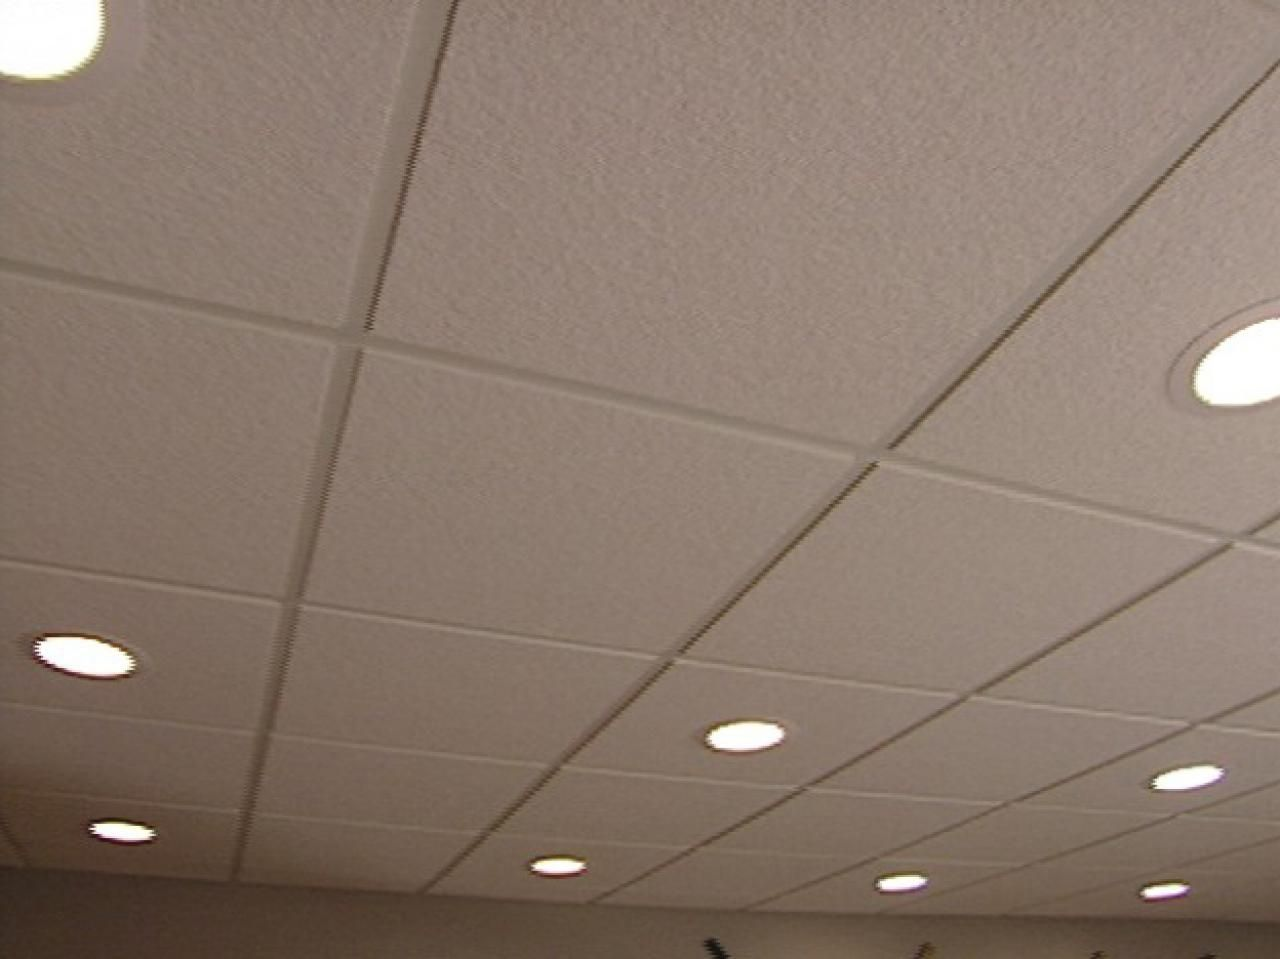 Led Can Lights For Suspended Ceilings Dropped Ceiling Drop Ceiling Lighting Install Drop Ceiling